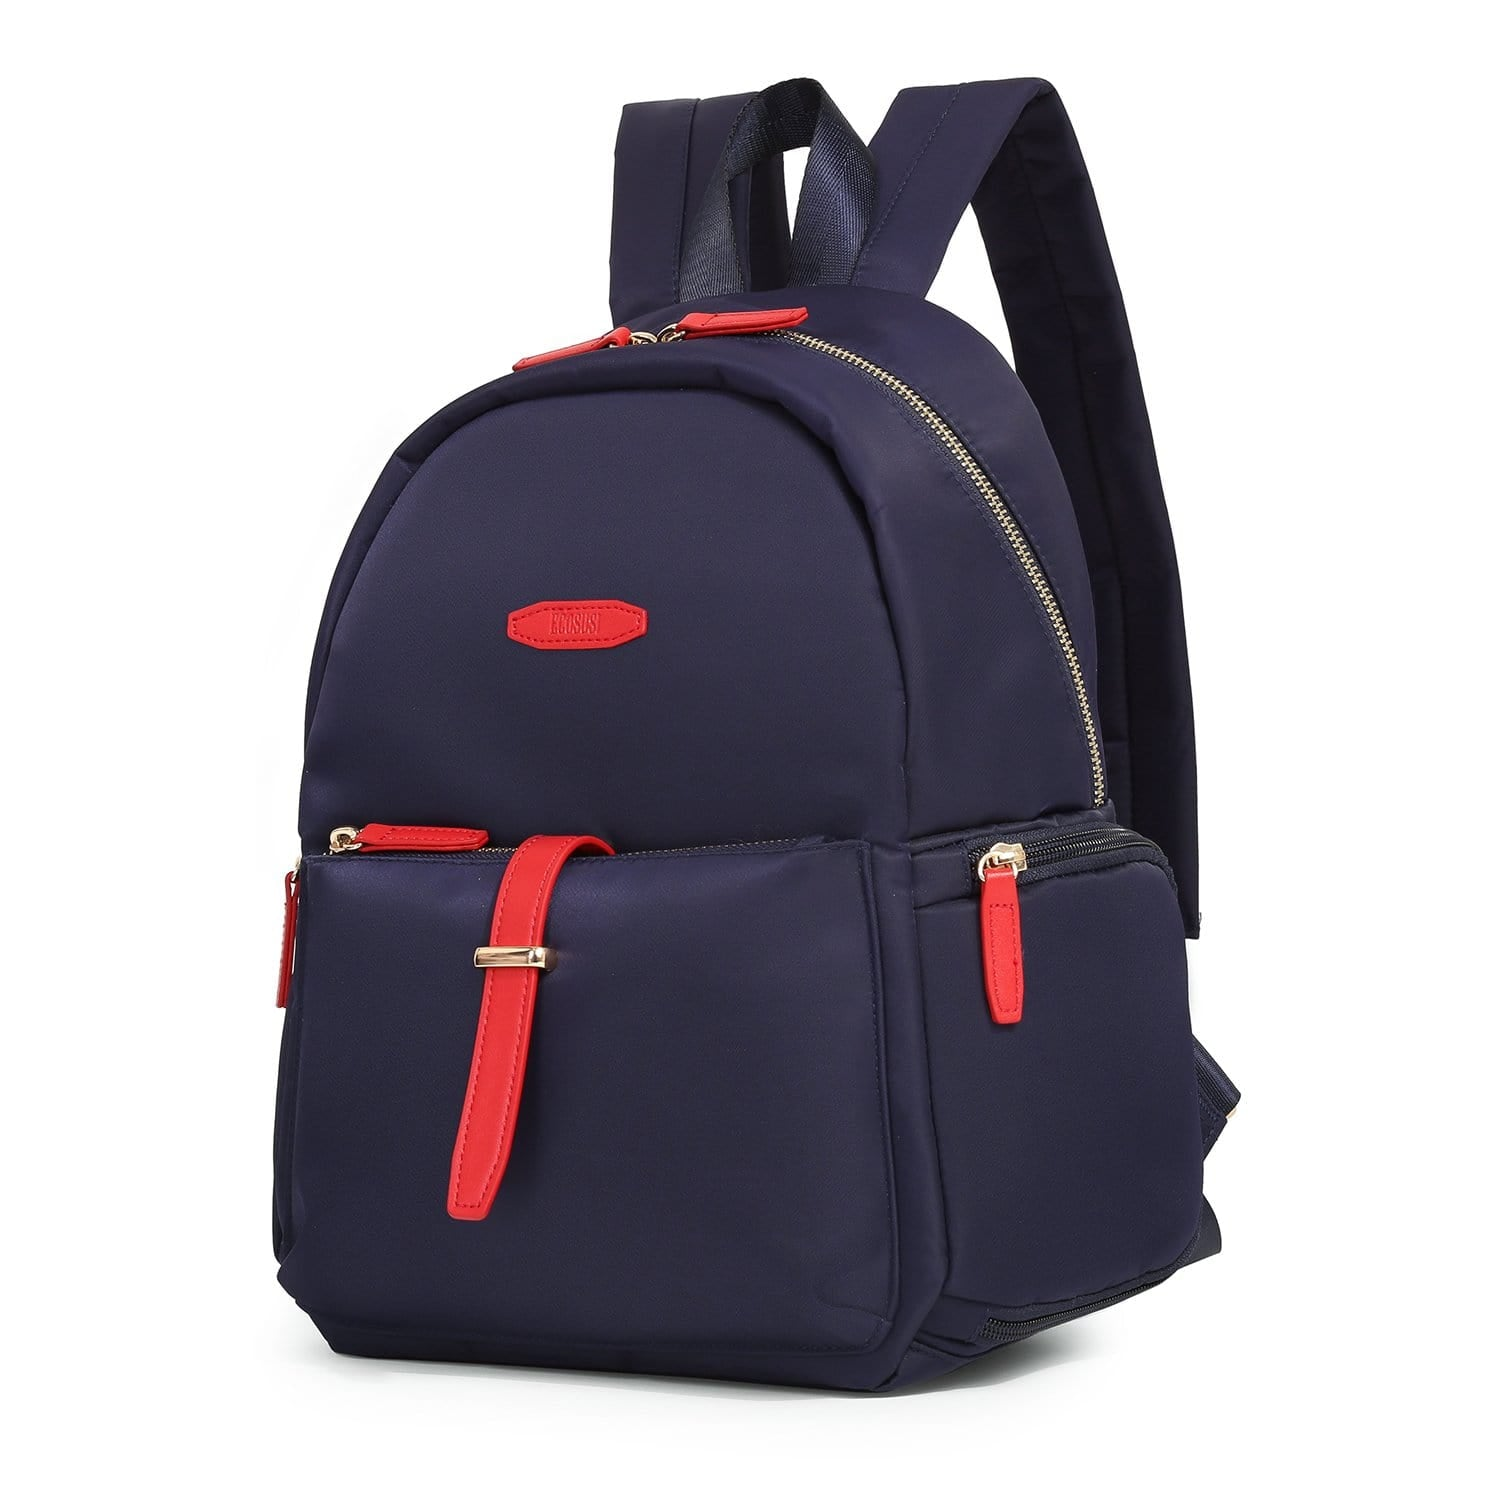 a09a8b947dab Lightweight Nylon Mini Campus Backpack for Women Fashion Purse Small Casual  Daypack